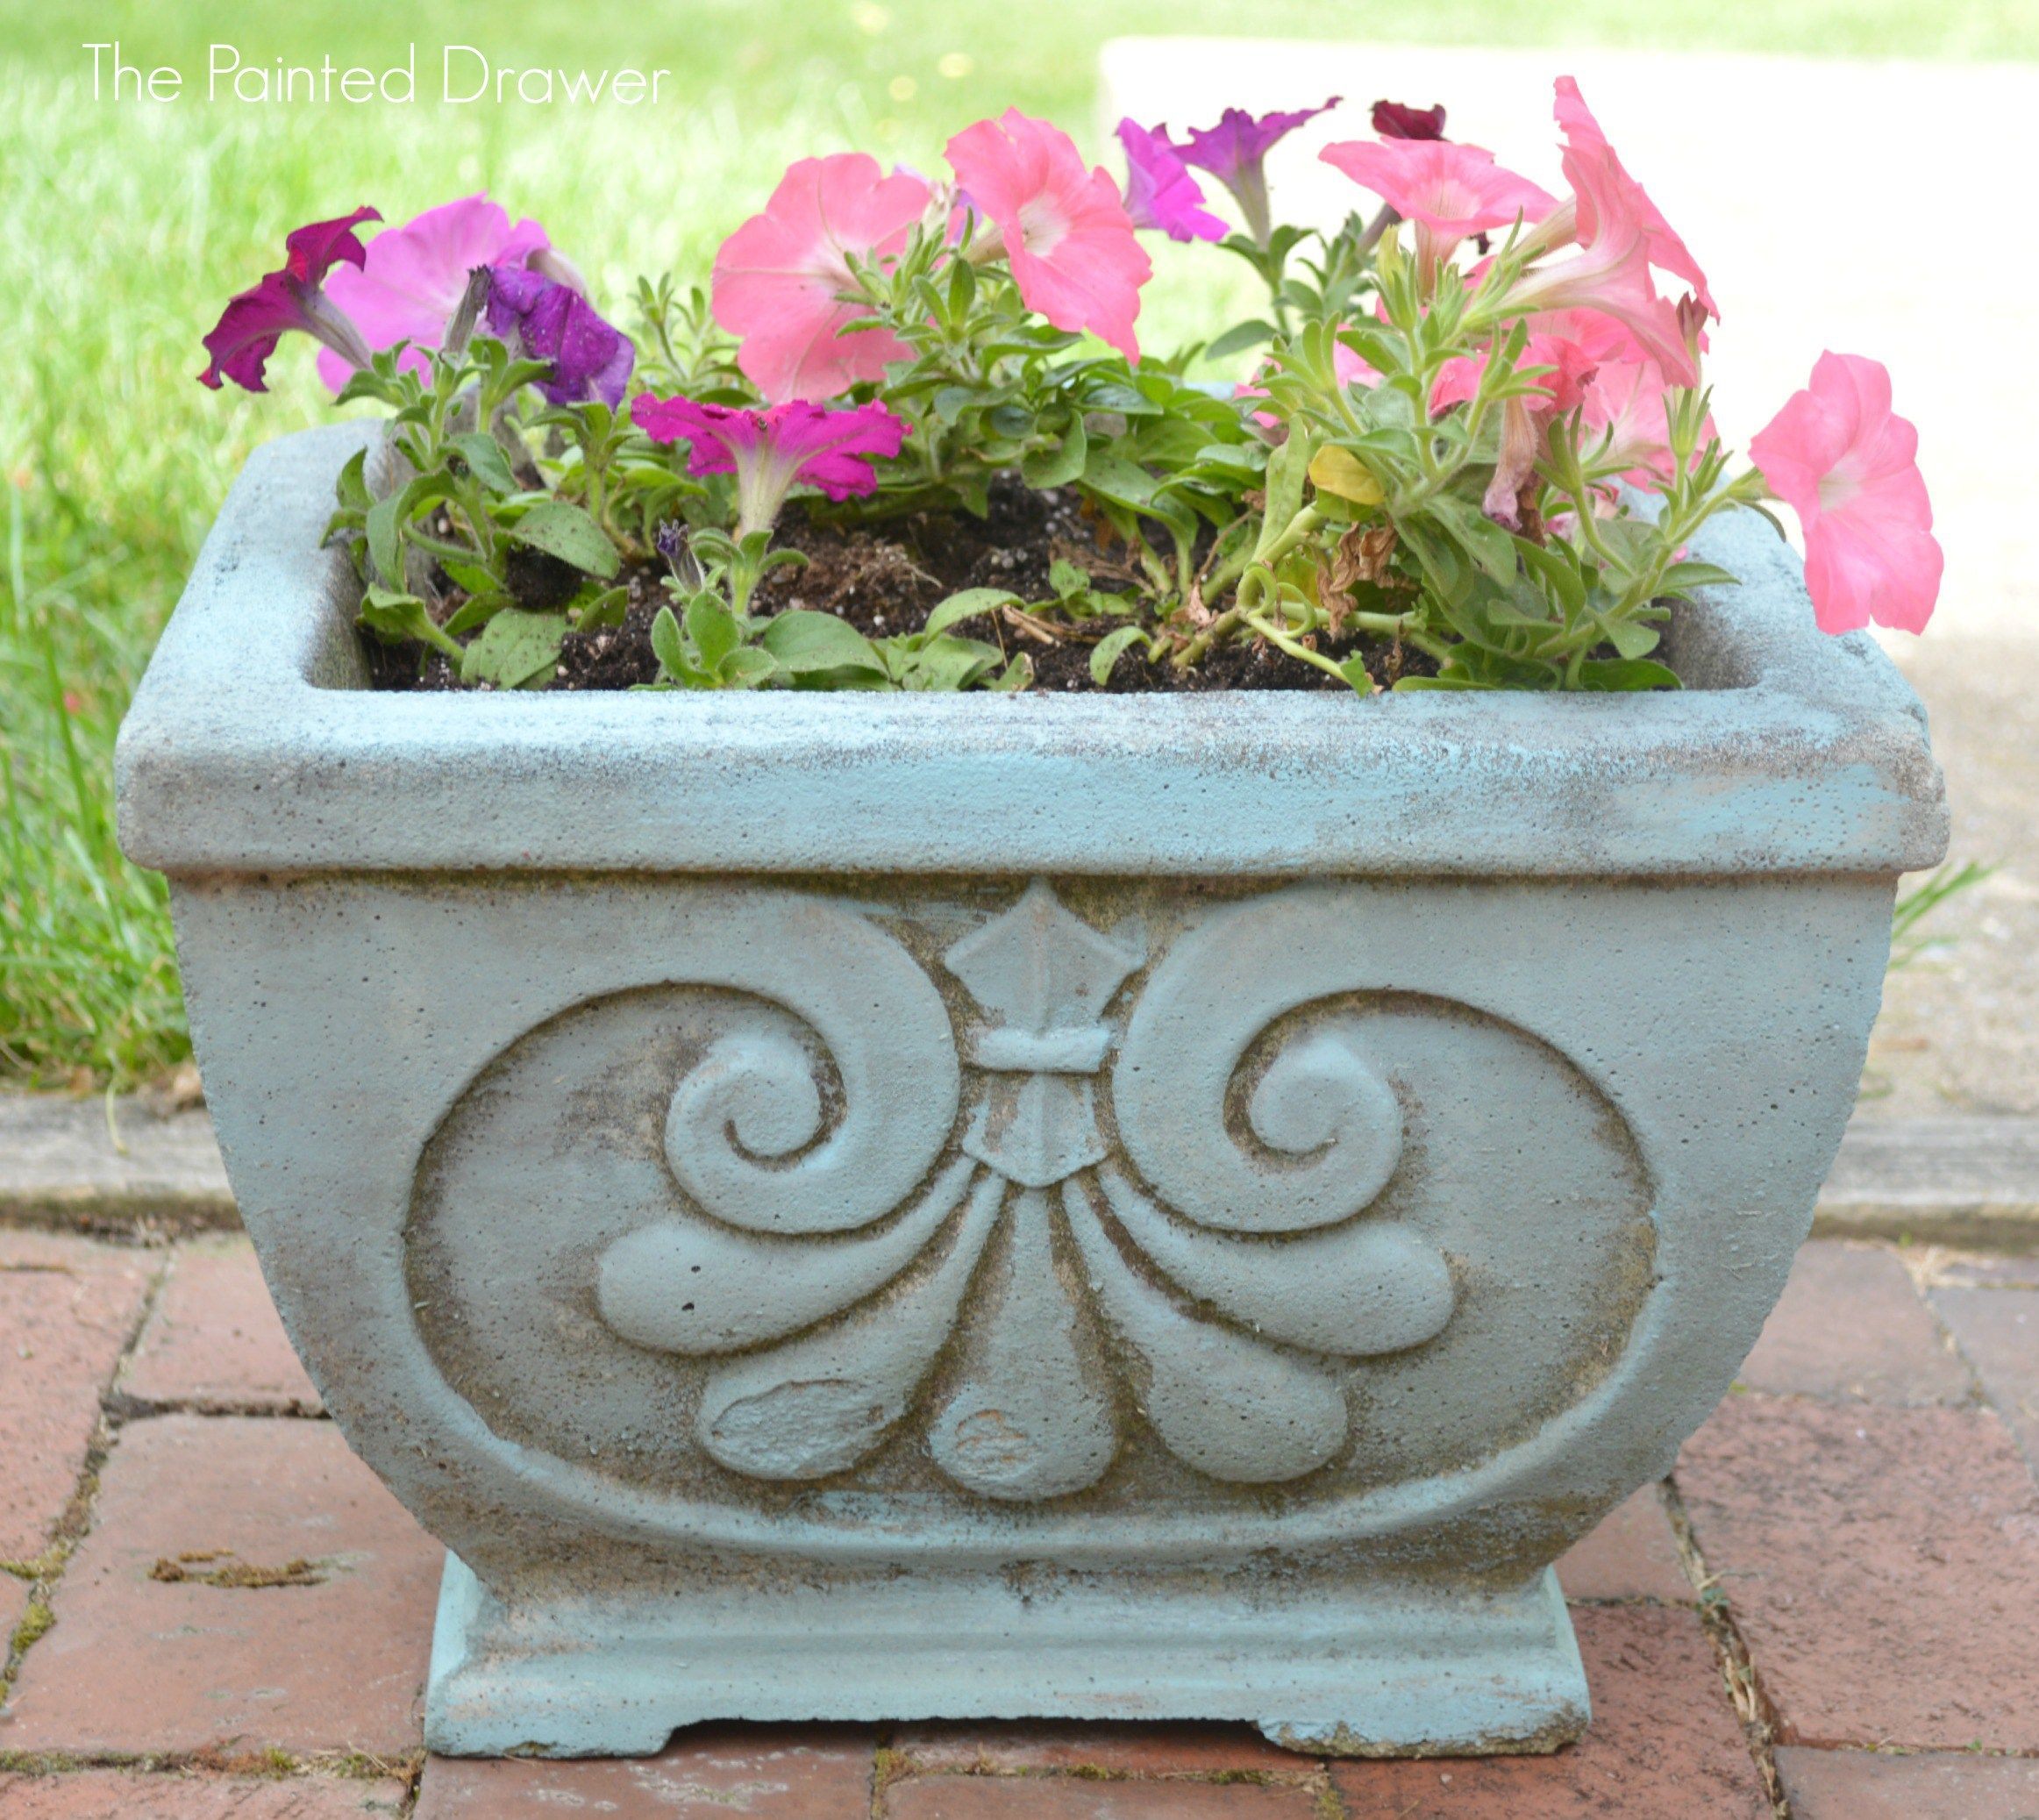 Chalk Paint Concrete Planter DIY thepainteddrawer